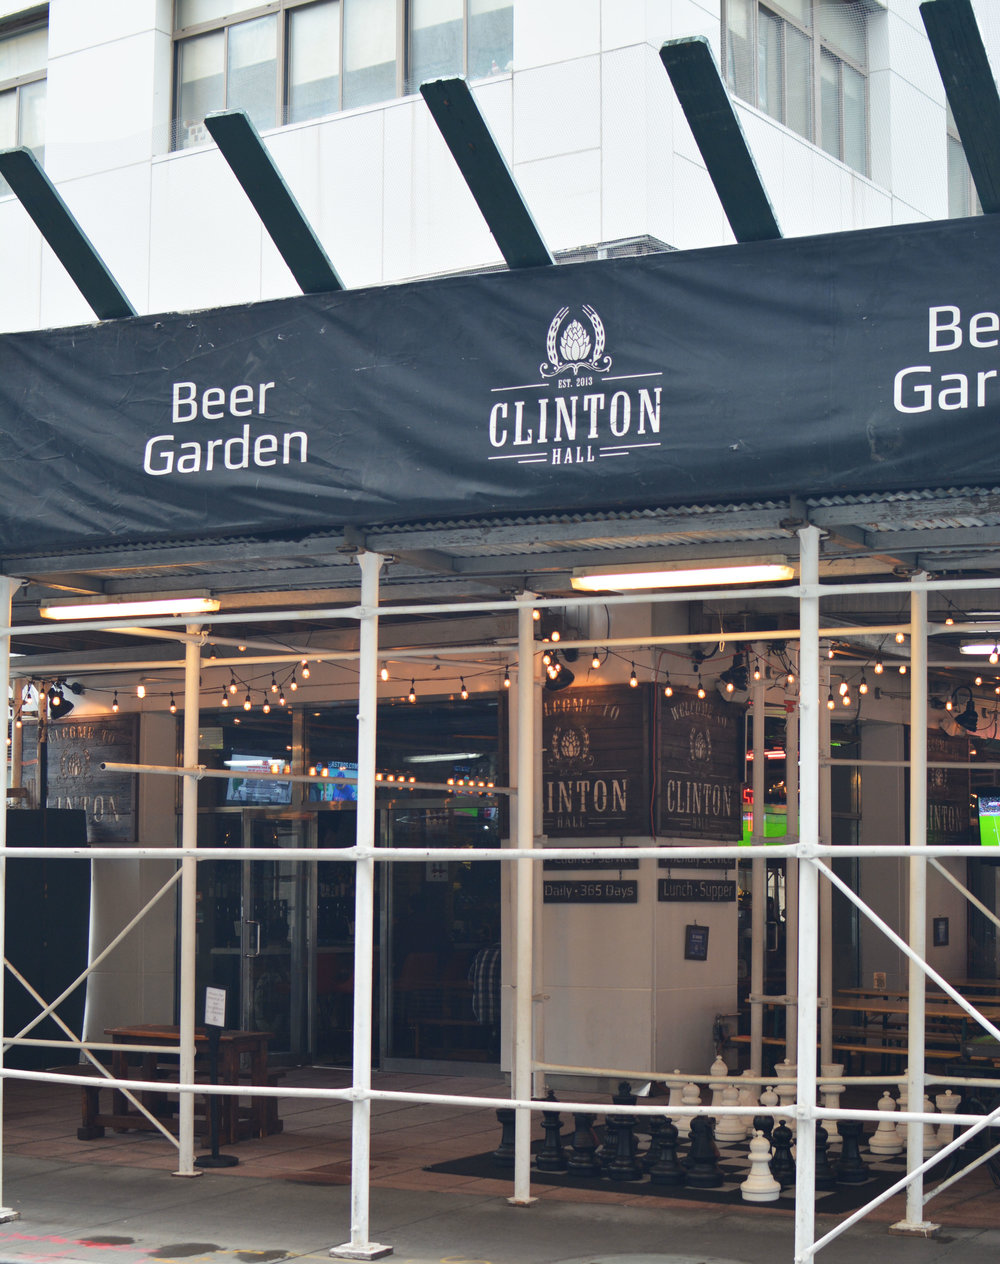 clinton-hall-fidi-nyc-beer.jpg